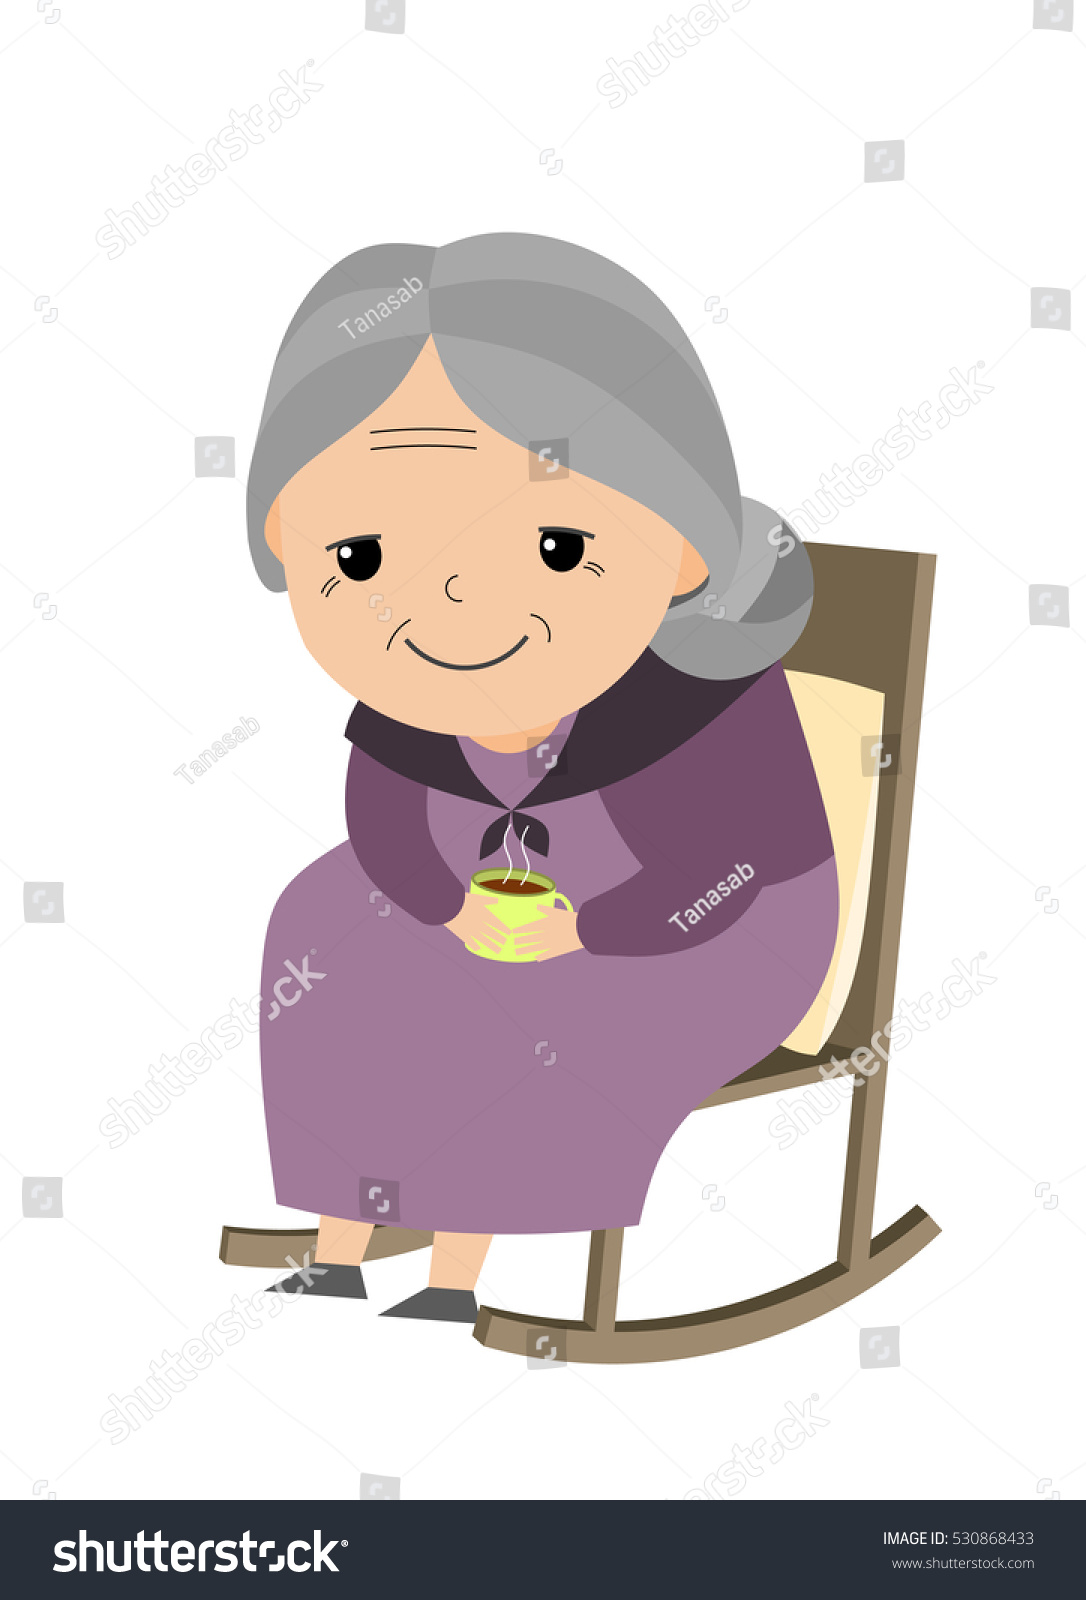 Old Lady Sitting Her Rocking Chair Stock Vector 530868433